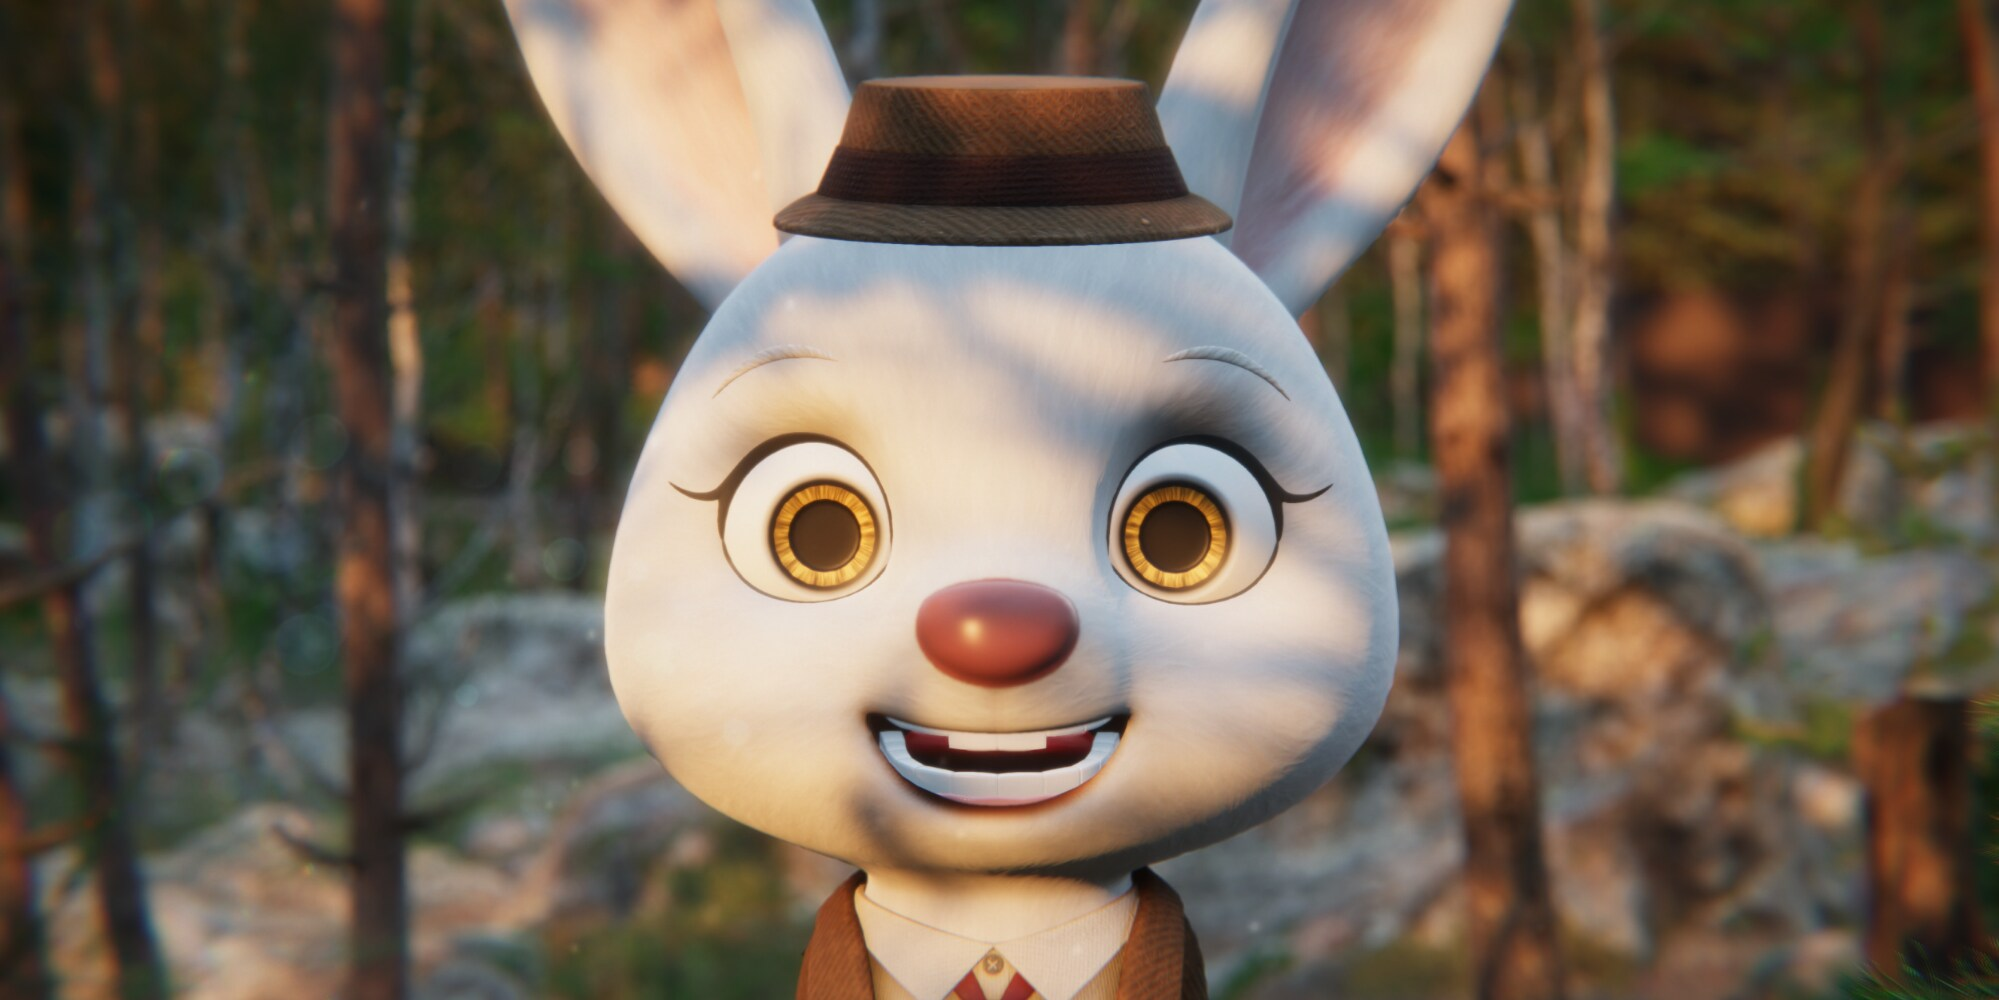 A bunny is looking at you, smiling.